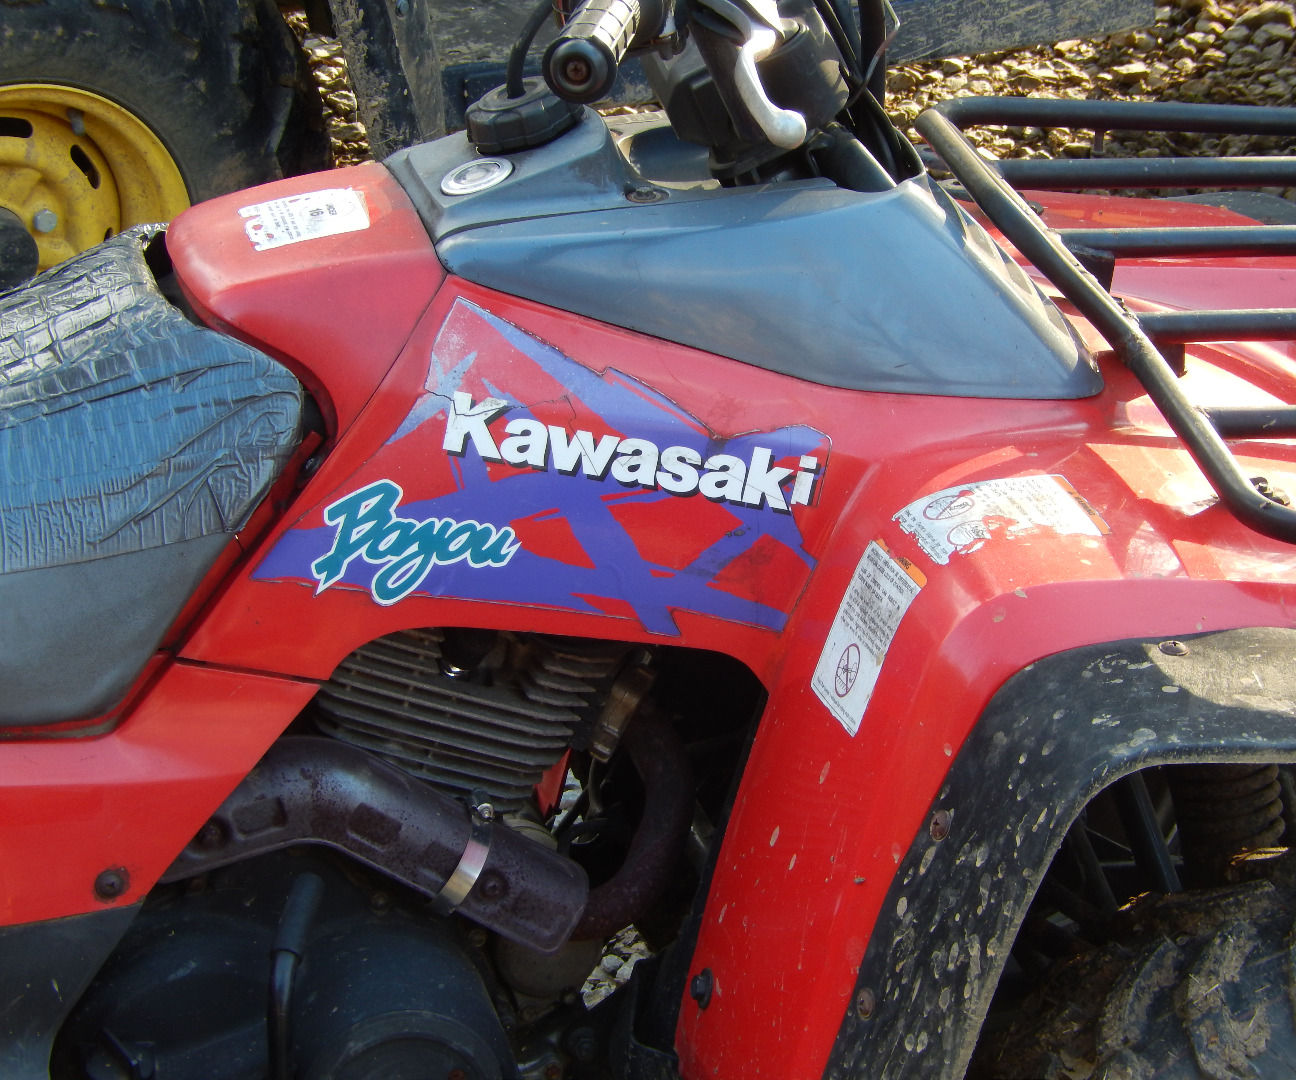 medium resolution of 1991 kawasaki bayou 300 4x4 wiring diagram house wiring diagram 2001 kawasaki prairie 300 wiring diagram kawasaki klf 300 4x4 wiring diagram